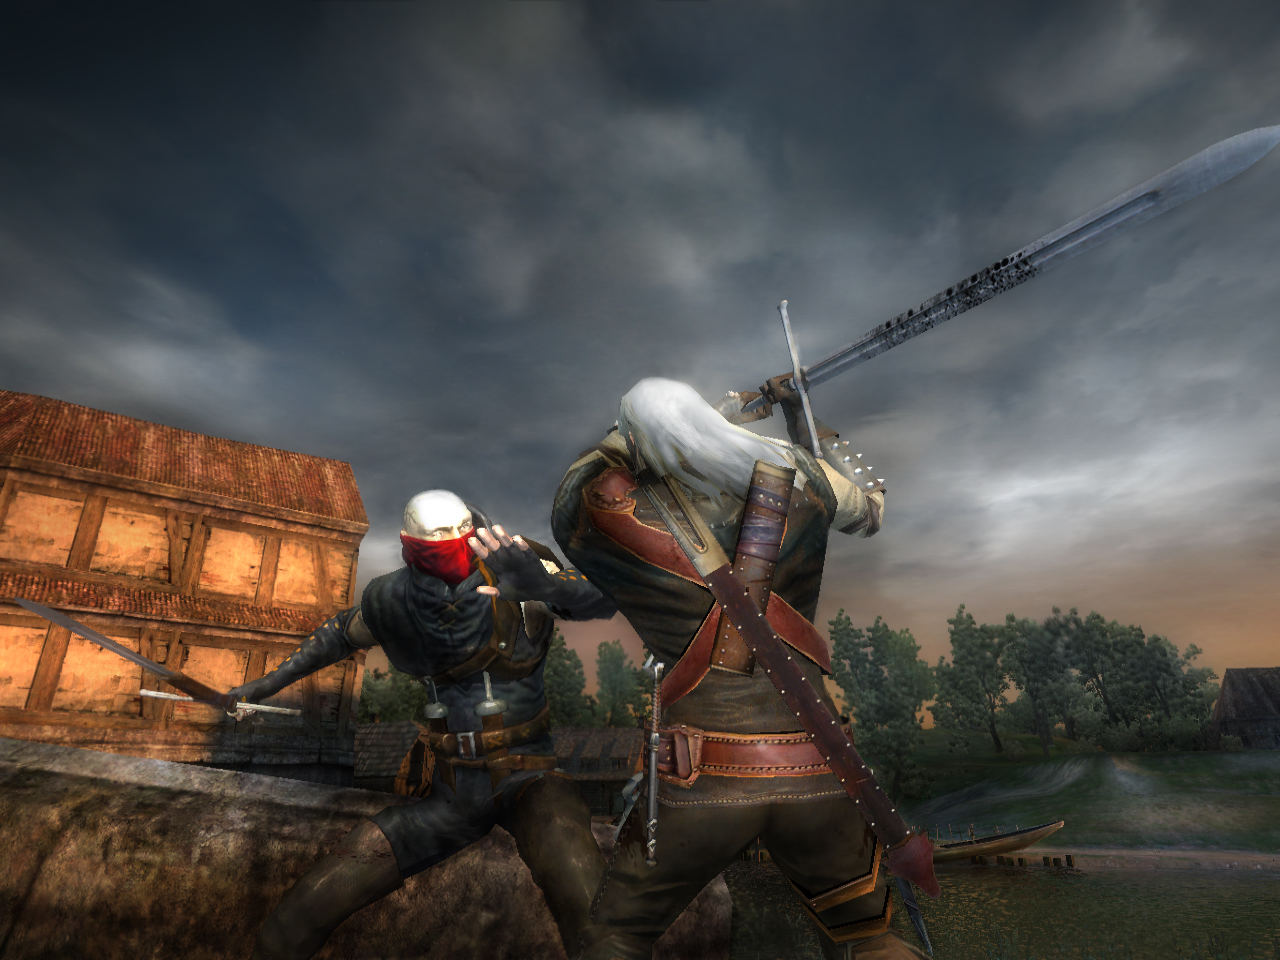 Pc Games Game Patches: The Witcher - The Witcher Enhanced Edition